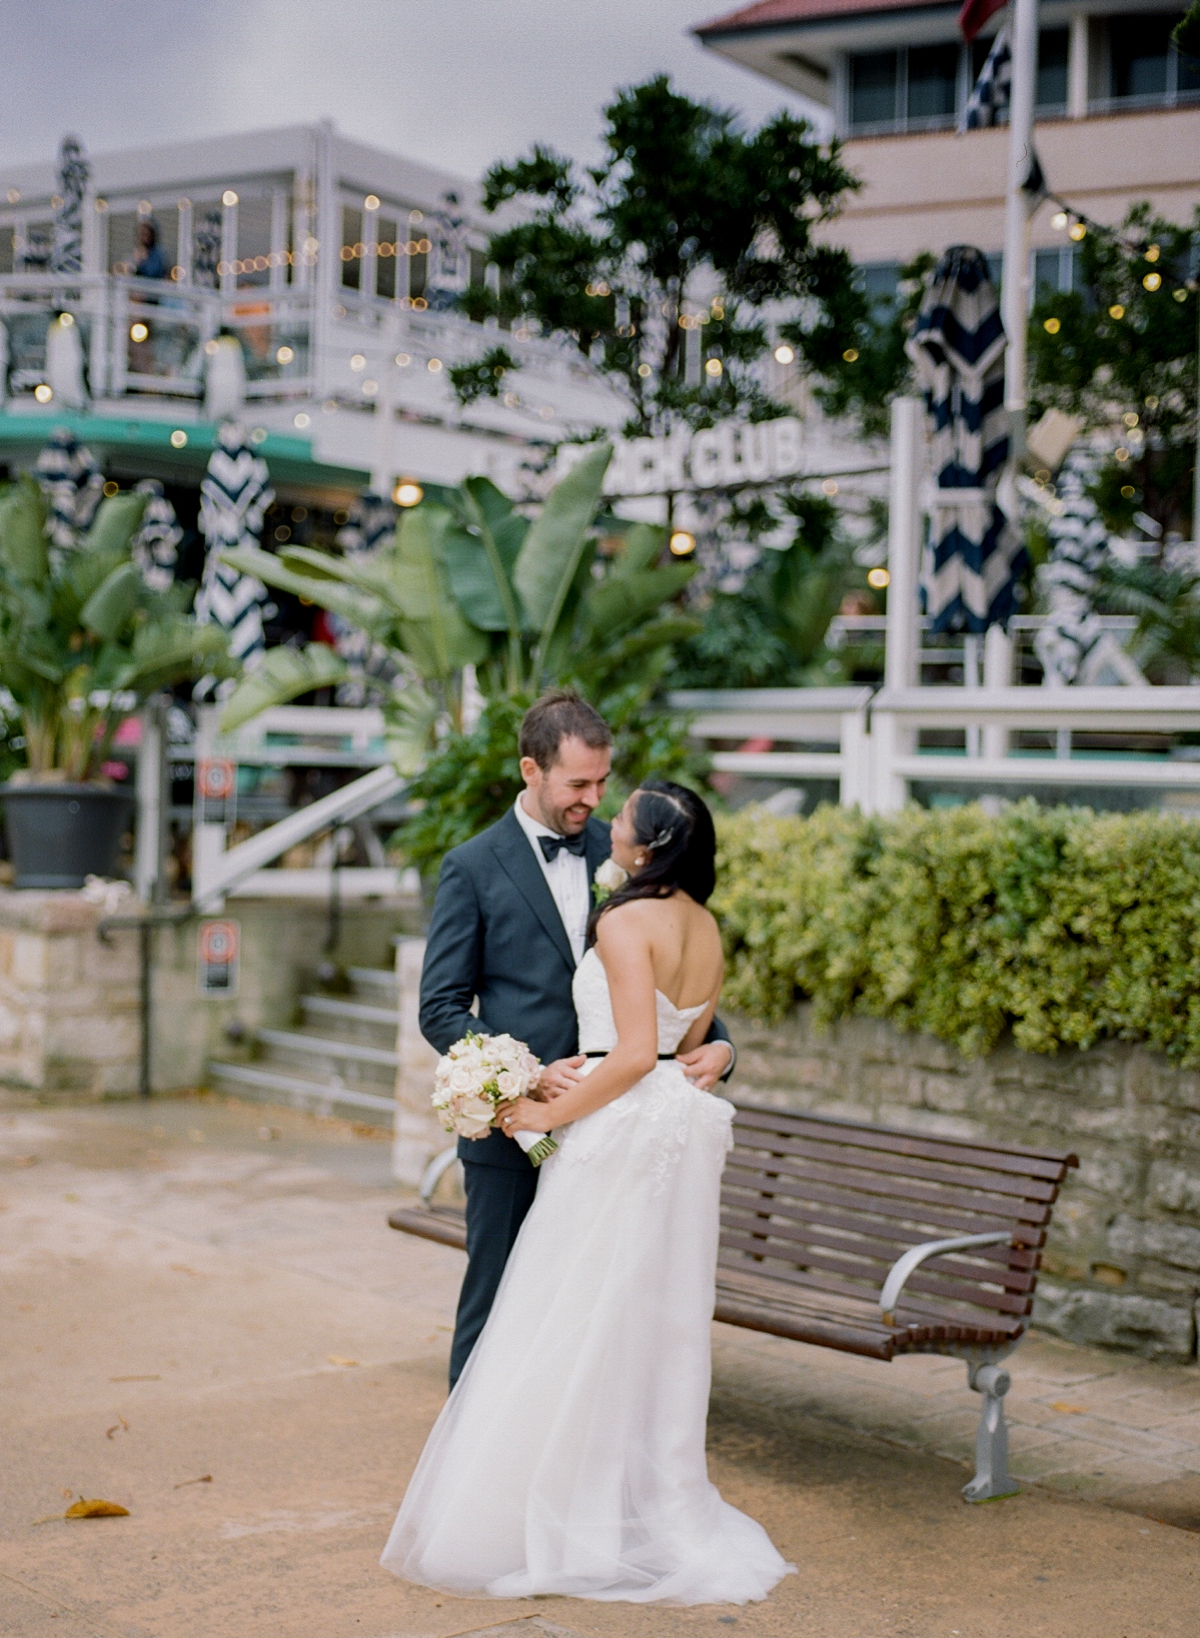 Watsons Bay wedding by Mr Edwards Photography_0737_1001.jpg